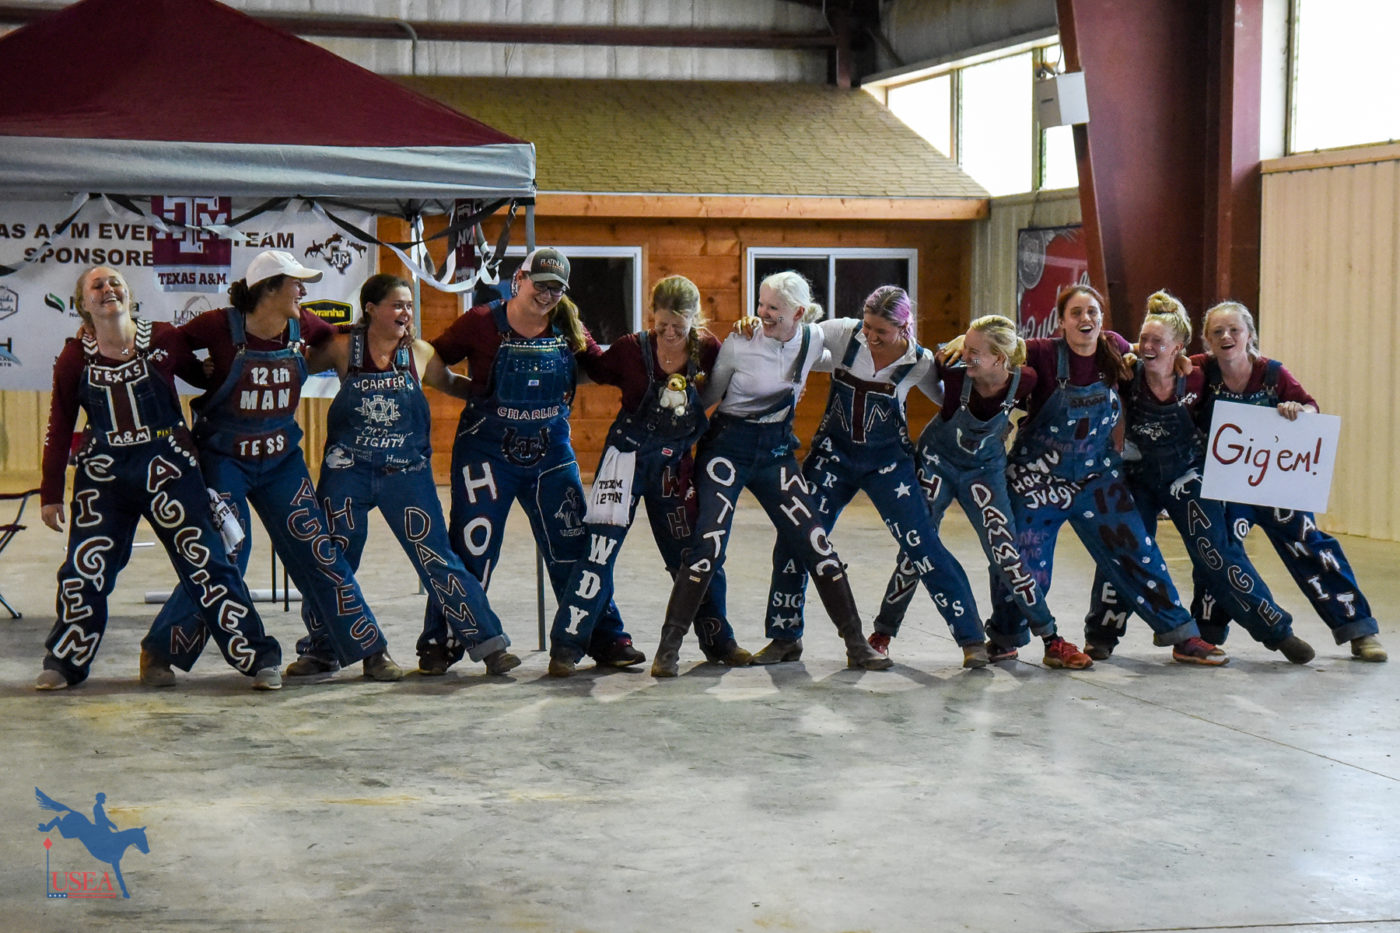 Texas A&M Eventing Team Yell Practice getting everyone in the spirit. USEA/Jessica Duffy Photo.